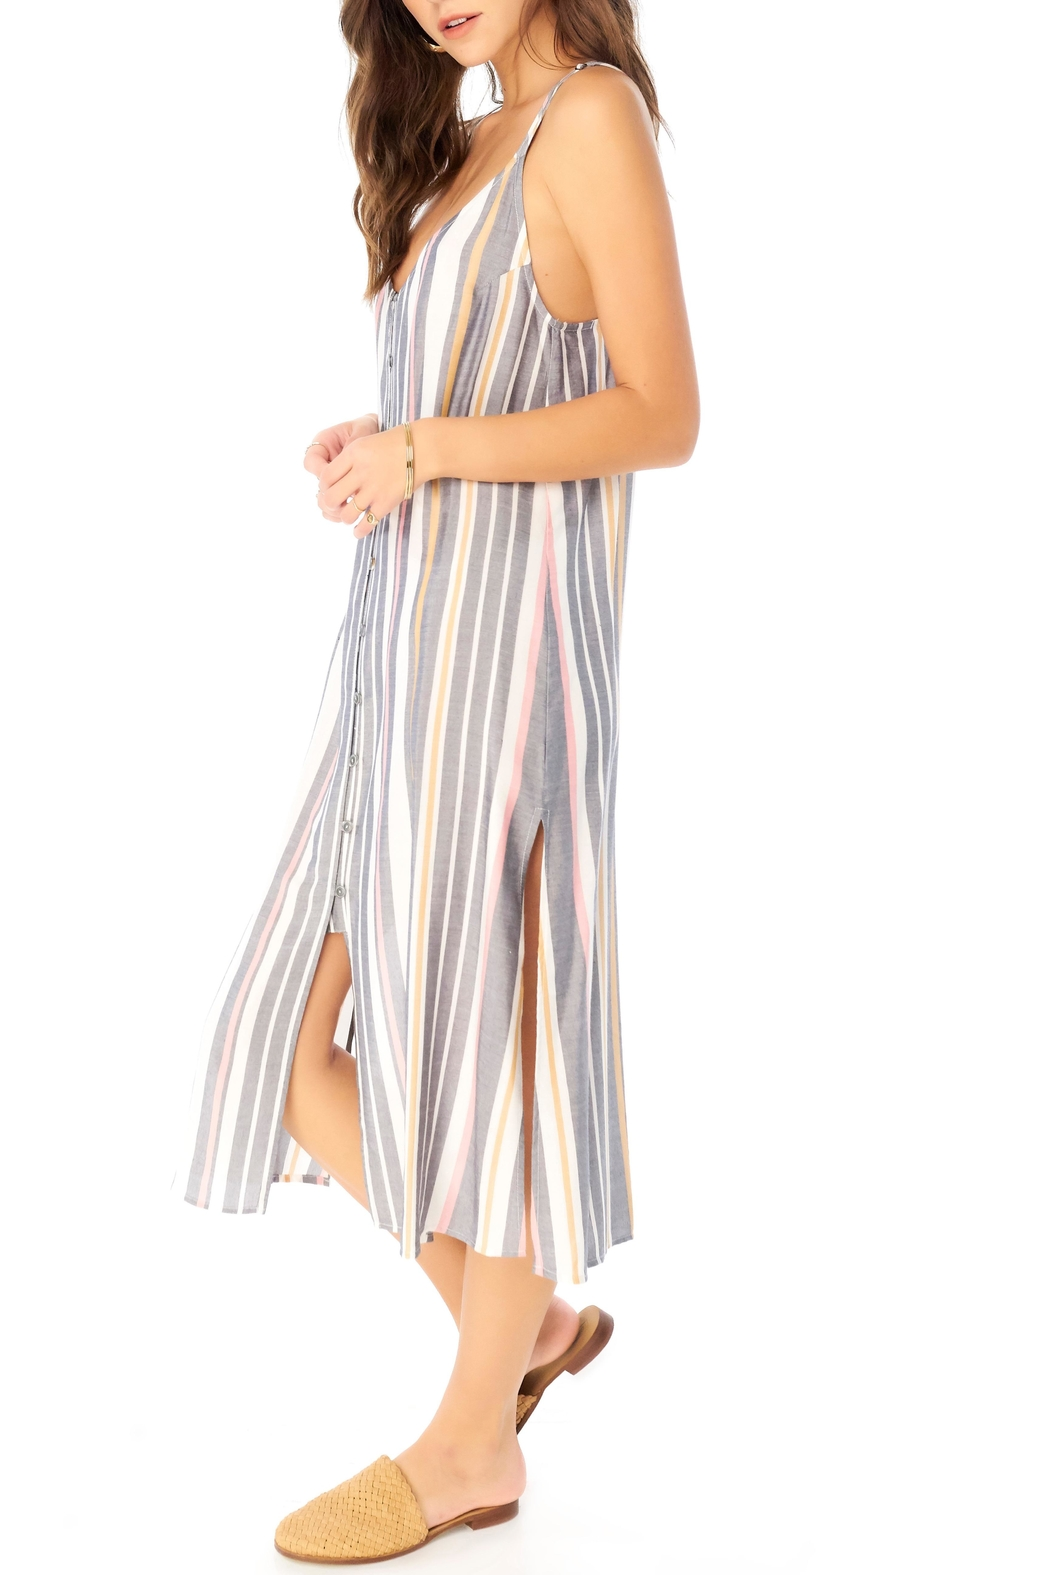 Saltwater Luxe Striped Midi Dress - Side Cropped Image